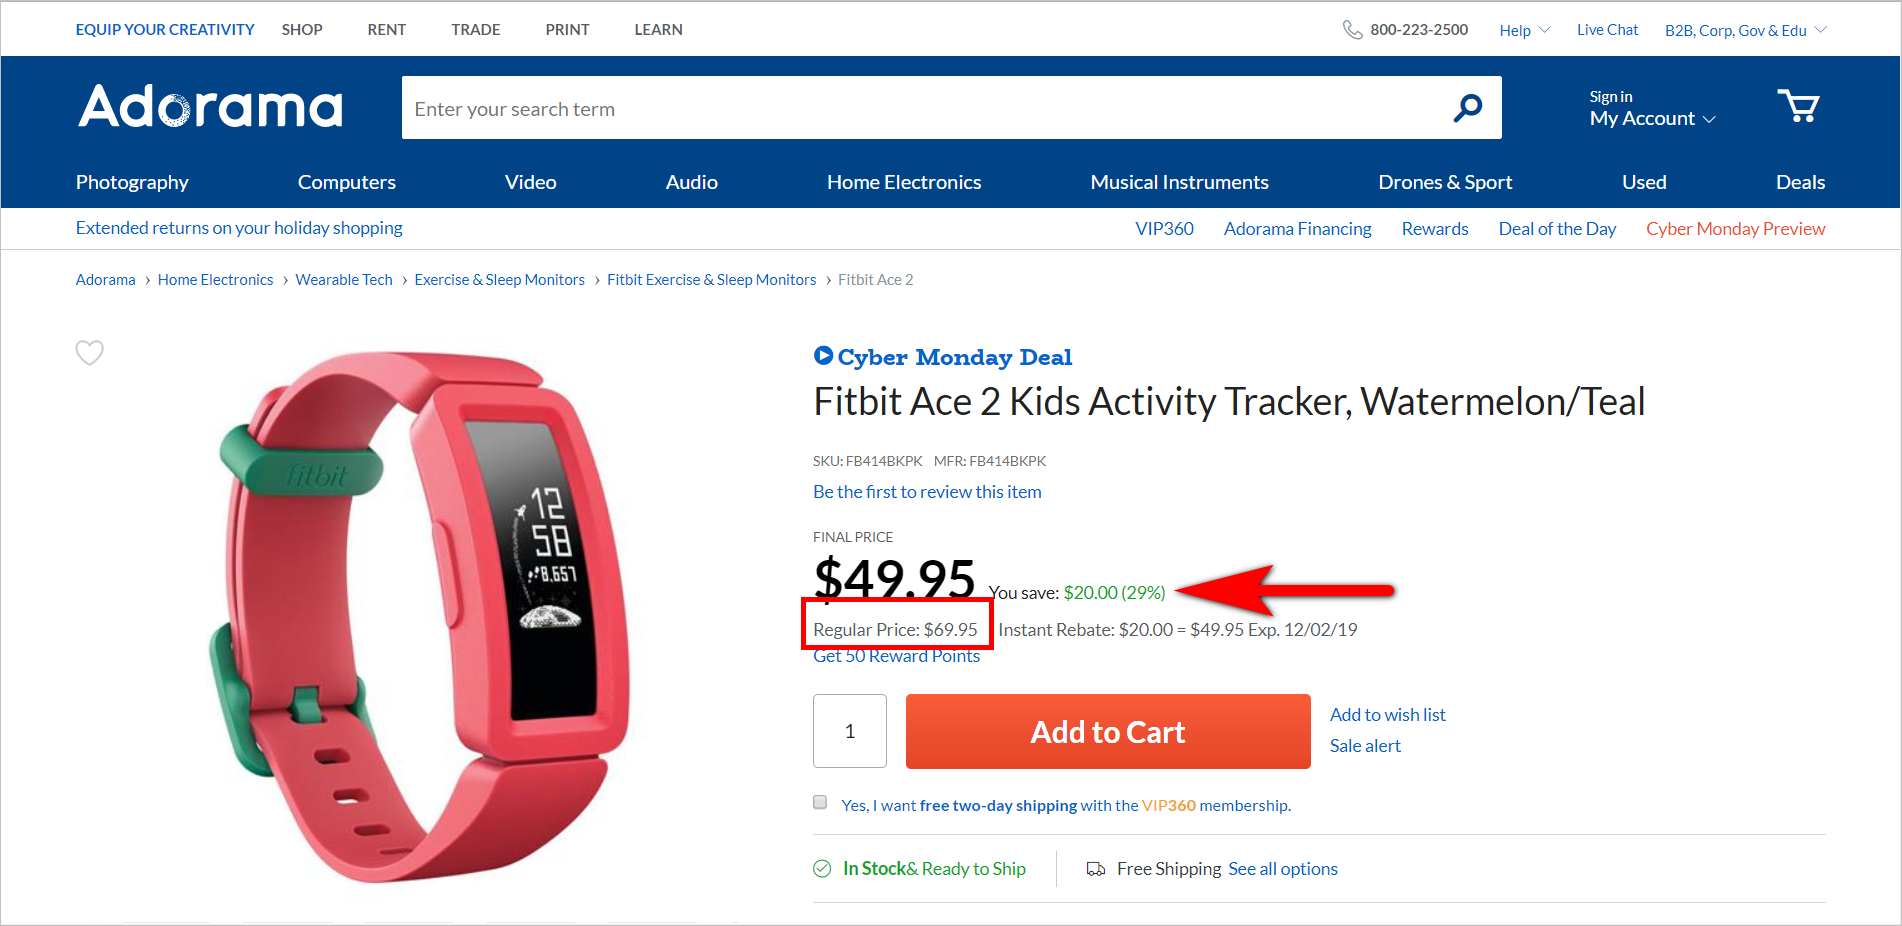 the rule of 100 example - adorama.com product detail page for fitbit ace 2 with a regular price of $69.95 and a sale price of $49.95. the pdp shows that the customer saves $20.00 or 29%